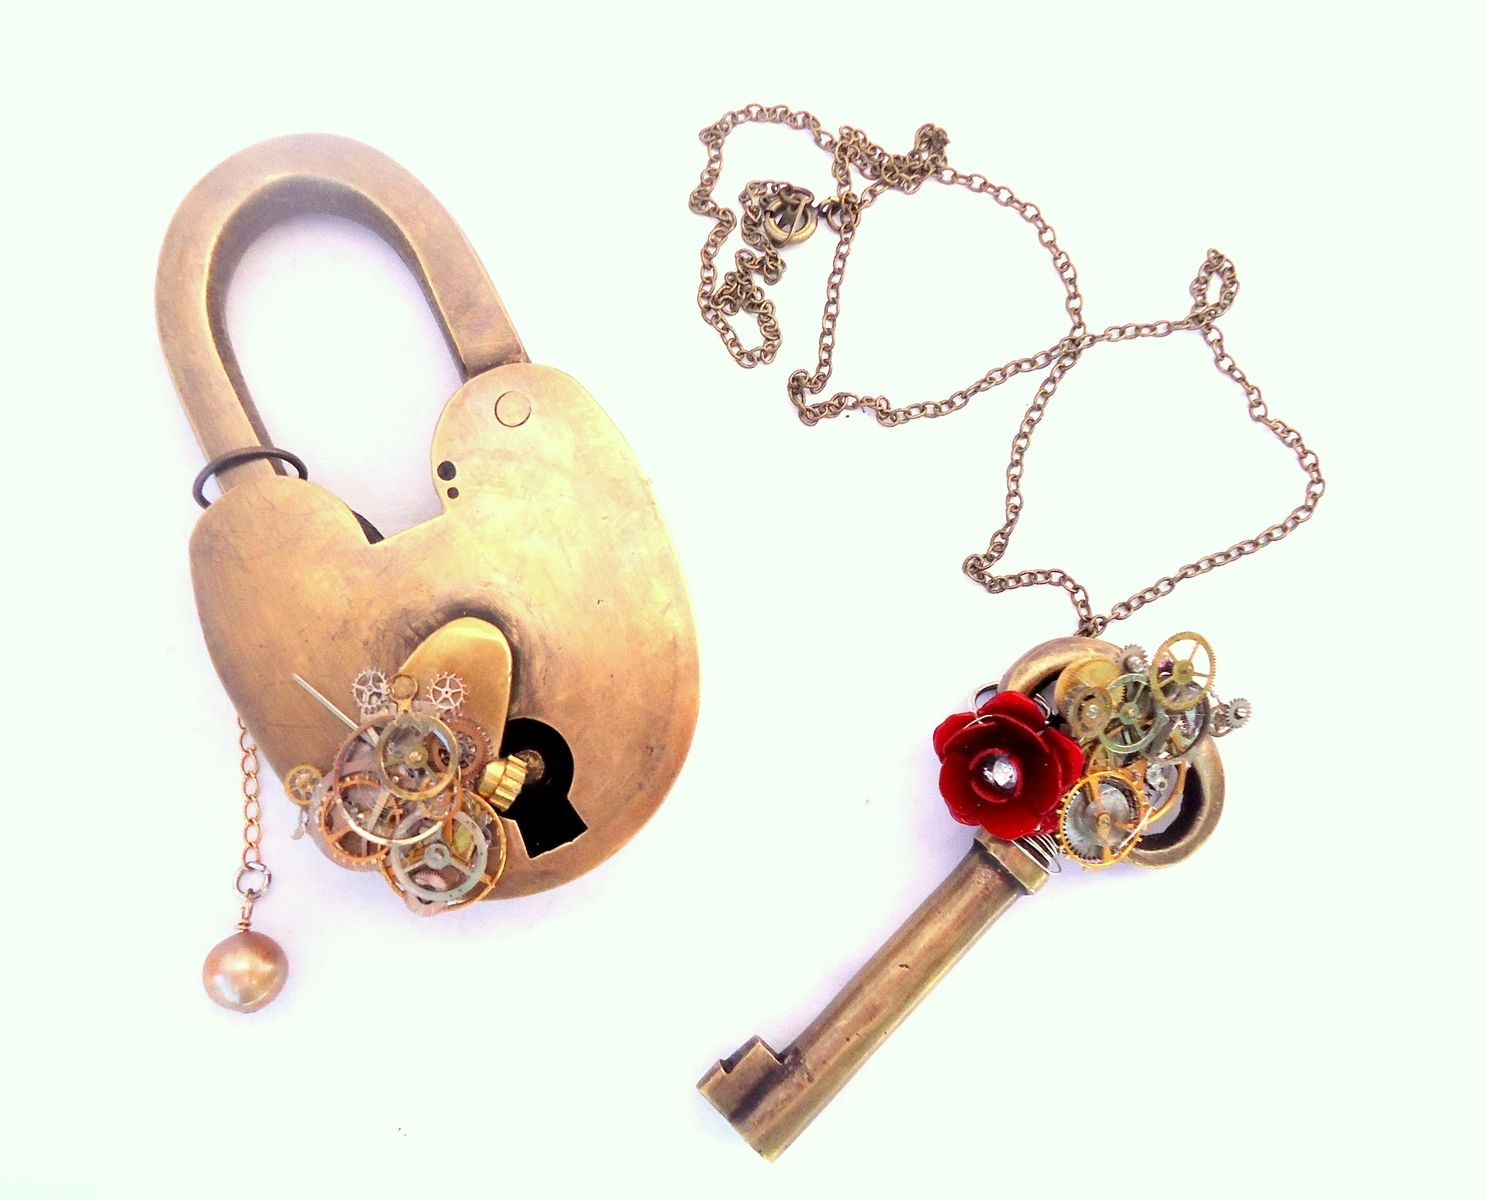 Custom Steampunk Lock And Key Set By Erika With A K